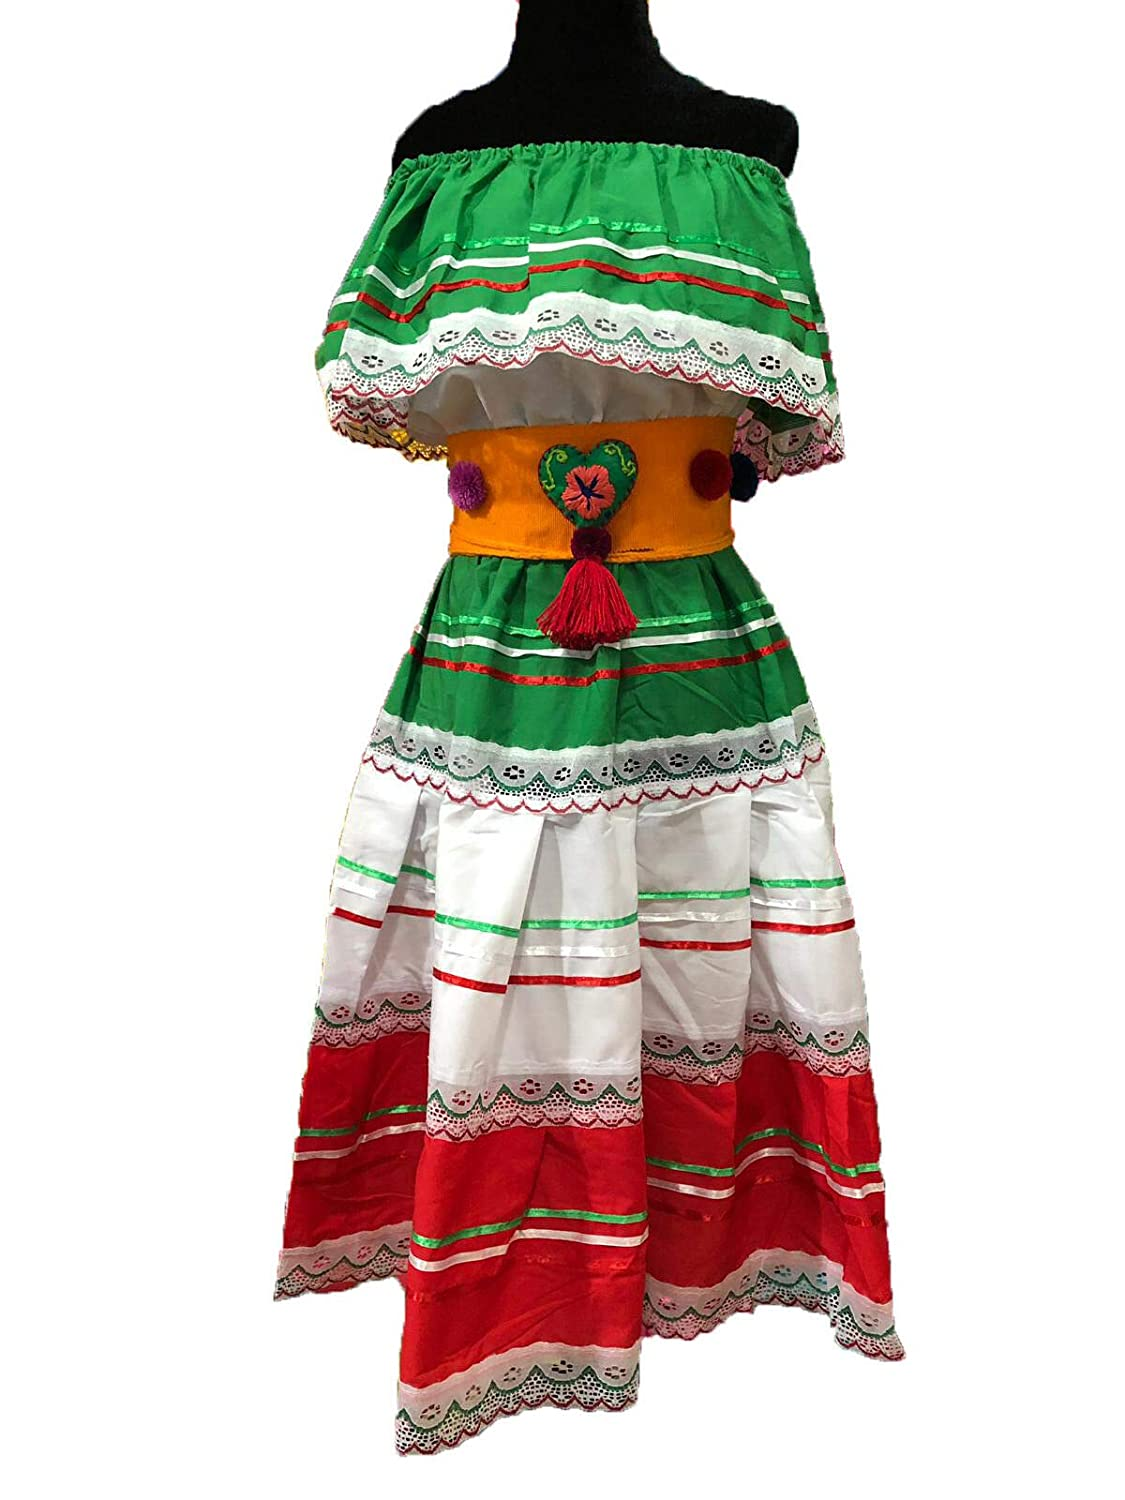 Women's Mexican Green/White/Red Fiesta Dress Small Size